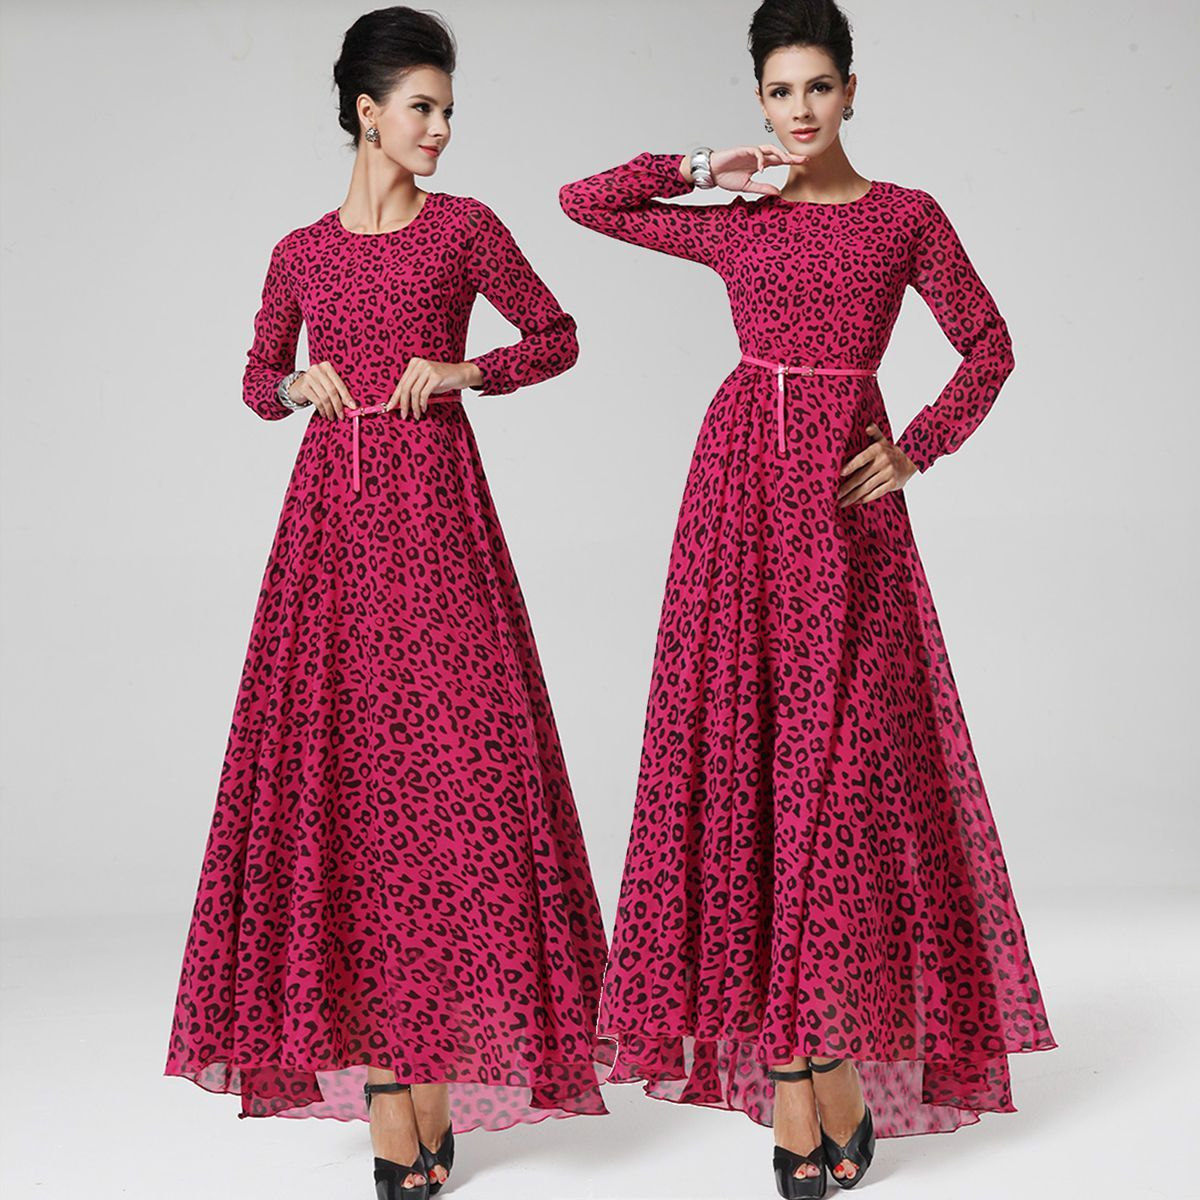 Celeb retro women leopard long sleeve chiffon fishtail maxi dress